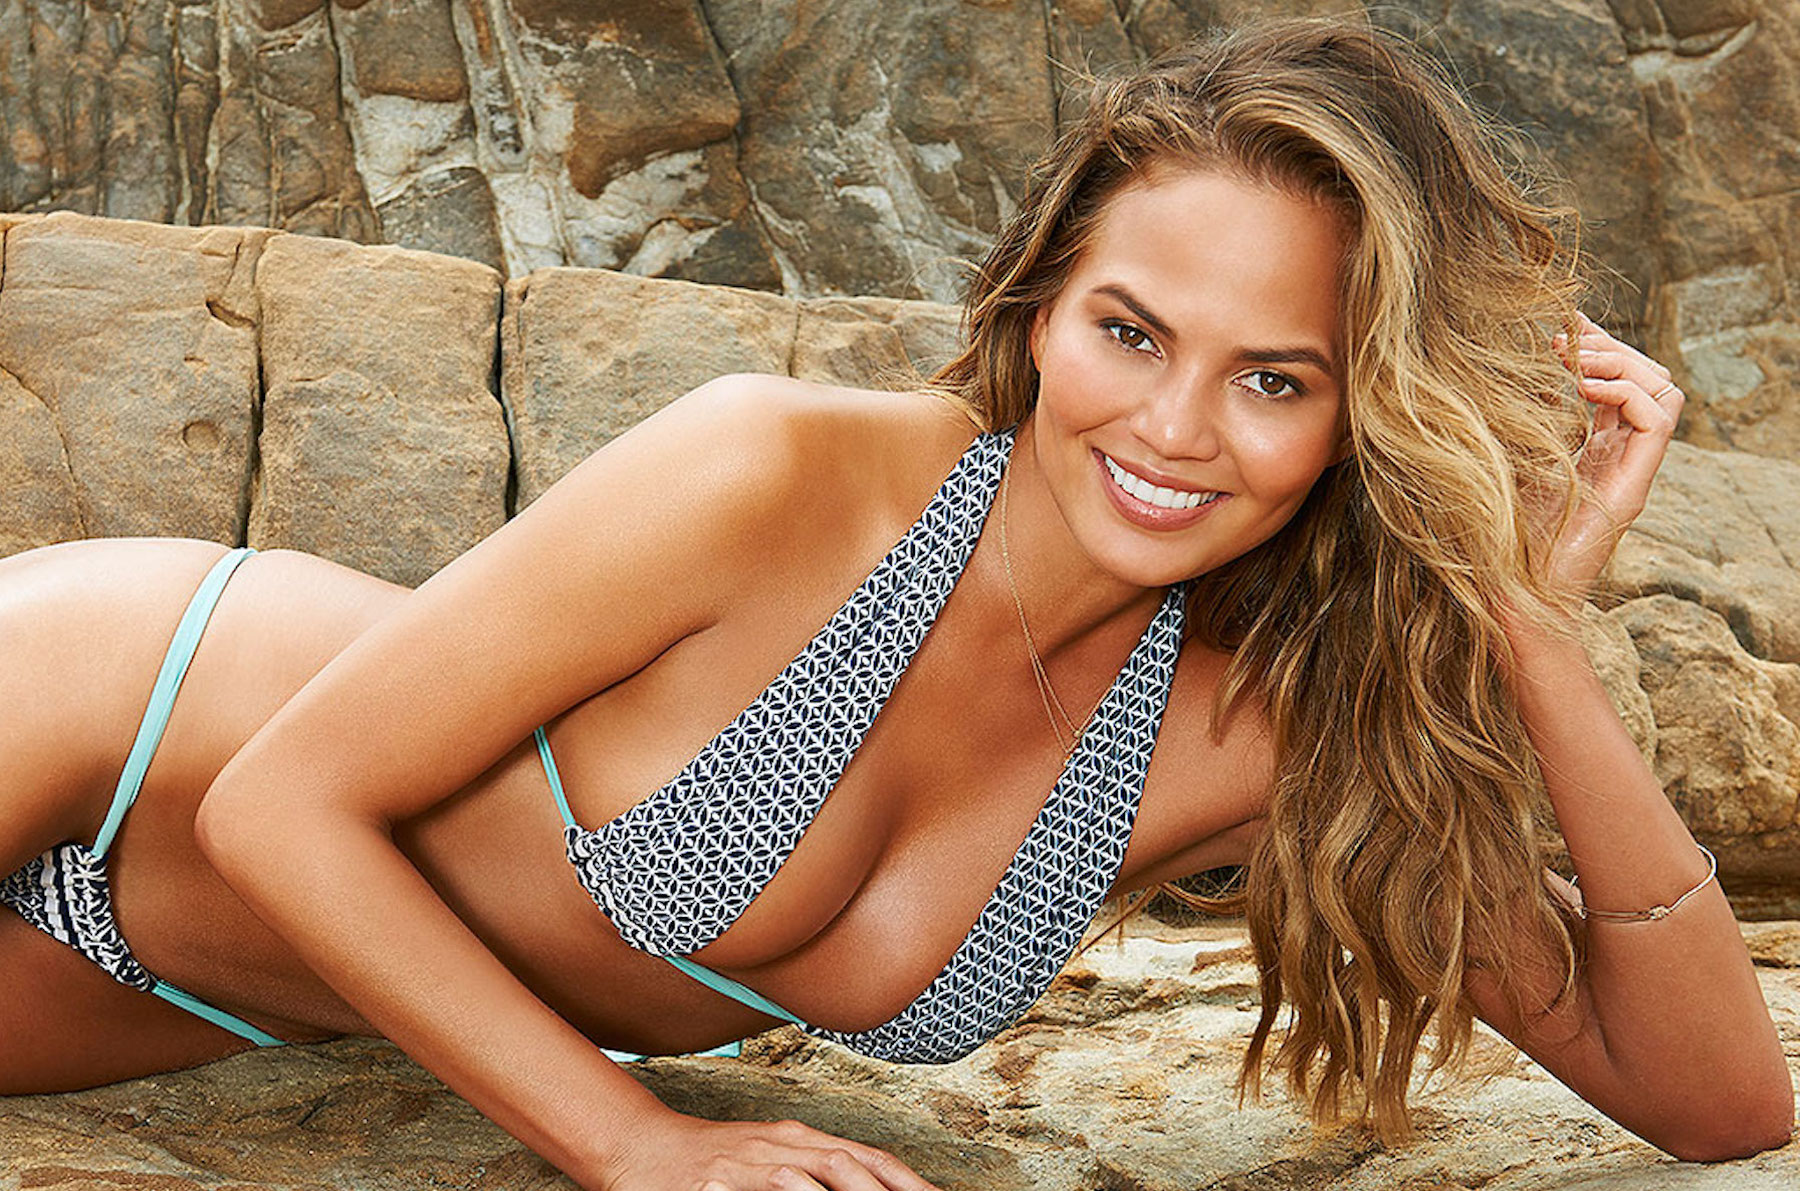 Chrissy Teigen Still Haunted by Comments Made Years Ago